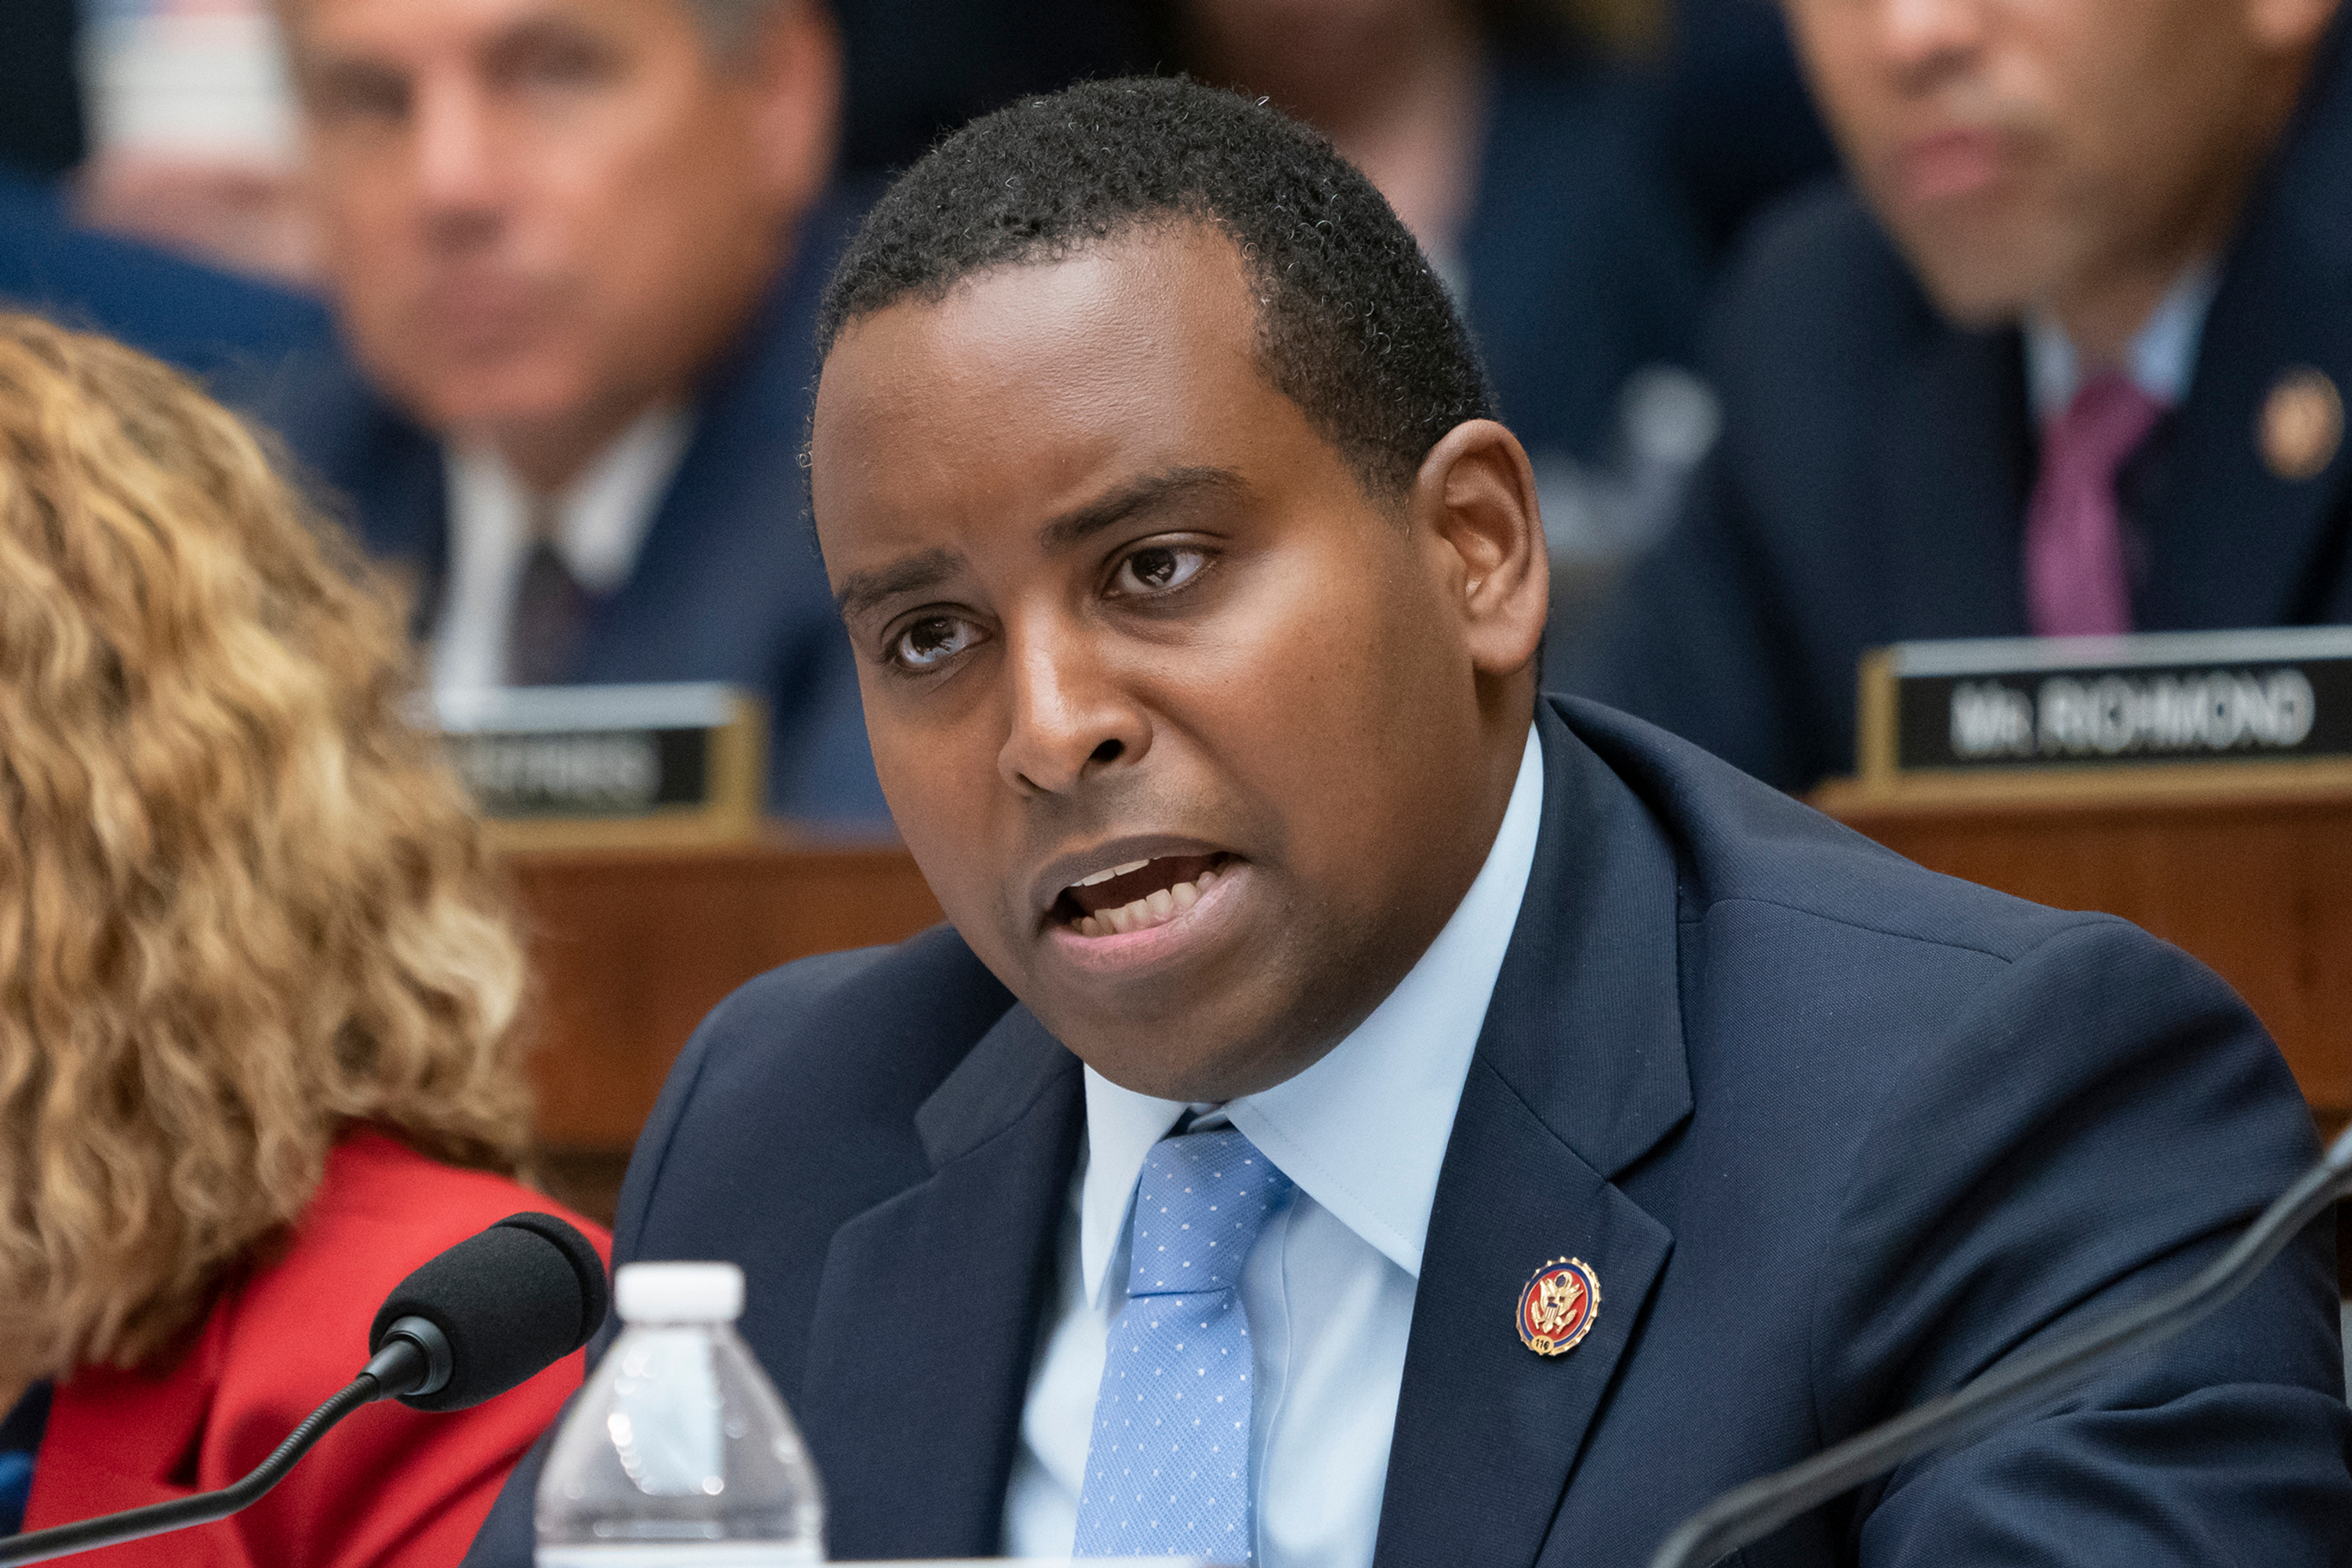 This Wednesday, July 24, 2019 file photo shows Rep. Joe Neguse, D-Colo., at a House Judiciary Committee hearing. Neguse is among Congressional Democrats who are questioning a Trump administration official's commitment to public lands and his attitude toward Native Americans. William Perry Pendley, the acting director of the U.S. Bureau of Land Management, was asked Tuesday by the House Committee on Natural Resources about his past advocacy for selling public lands and comments he allegedly made about Native Americans.